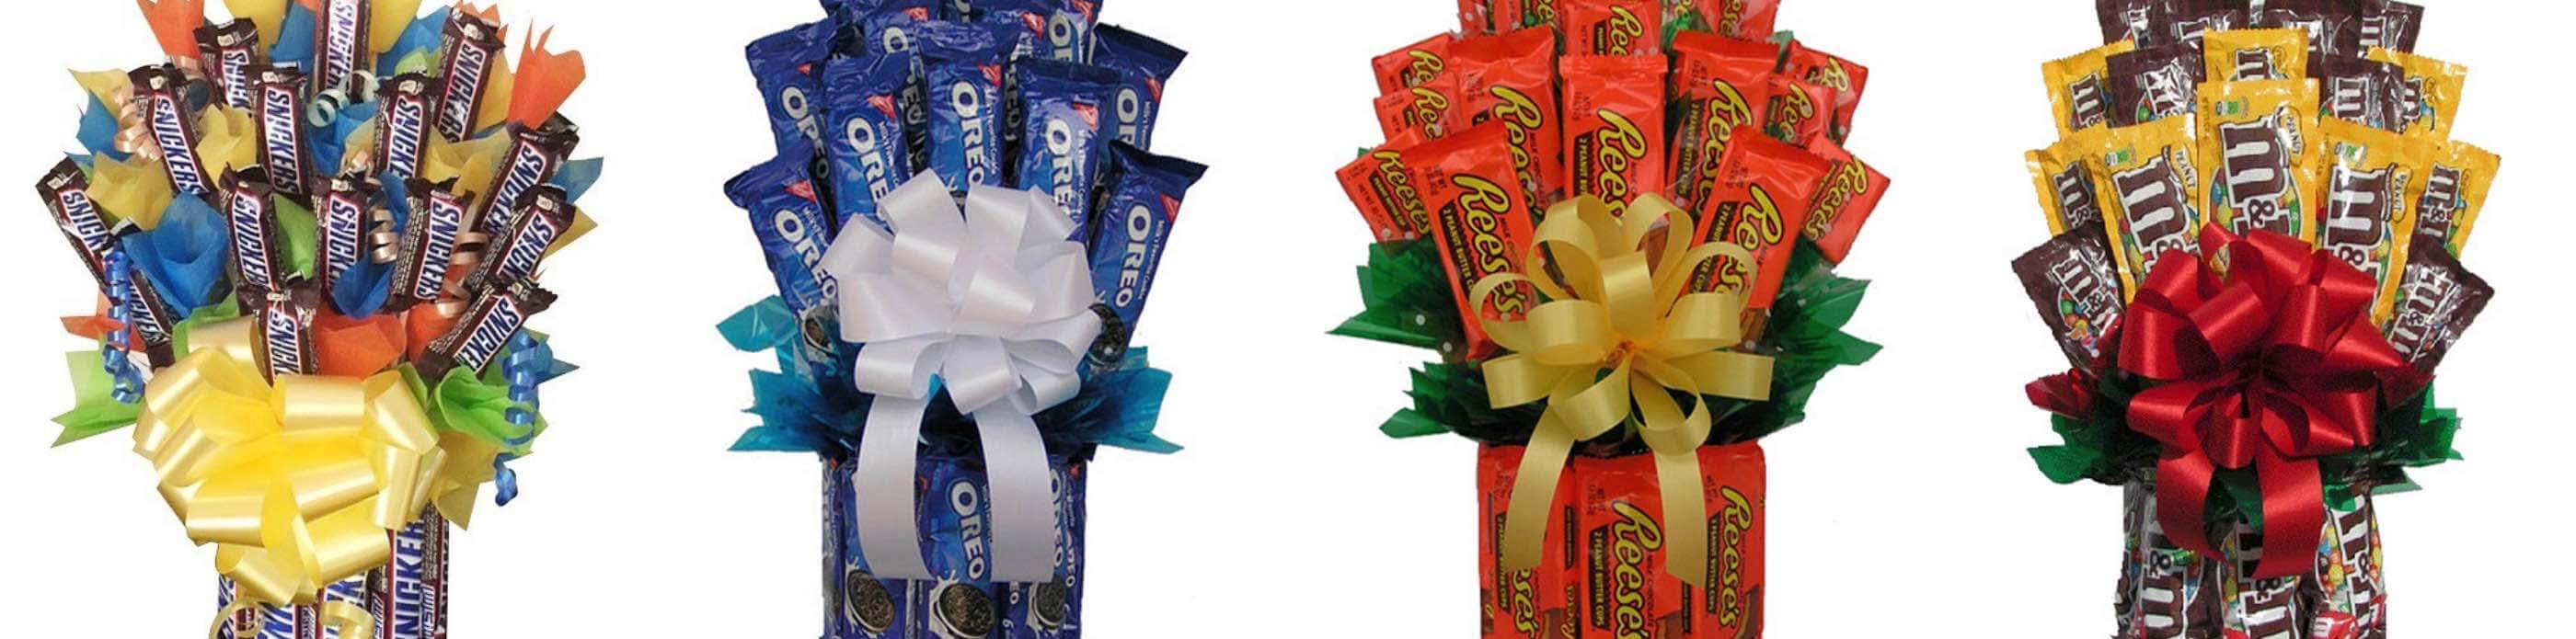 candy-bouquets-banner-2.jpg